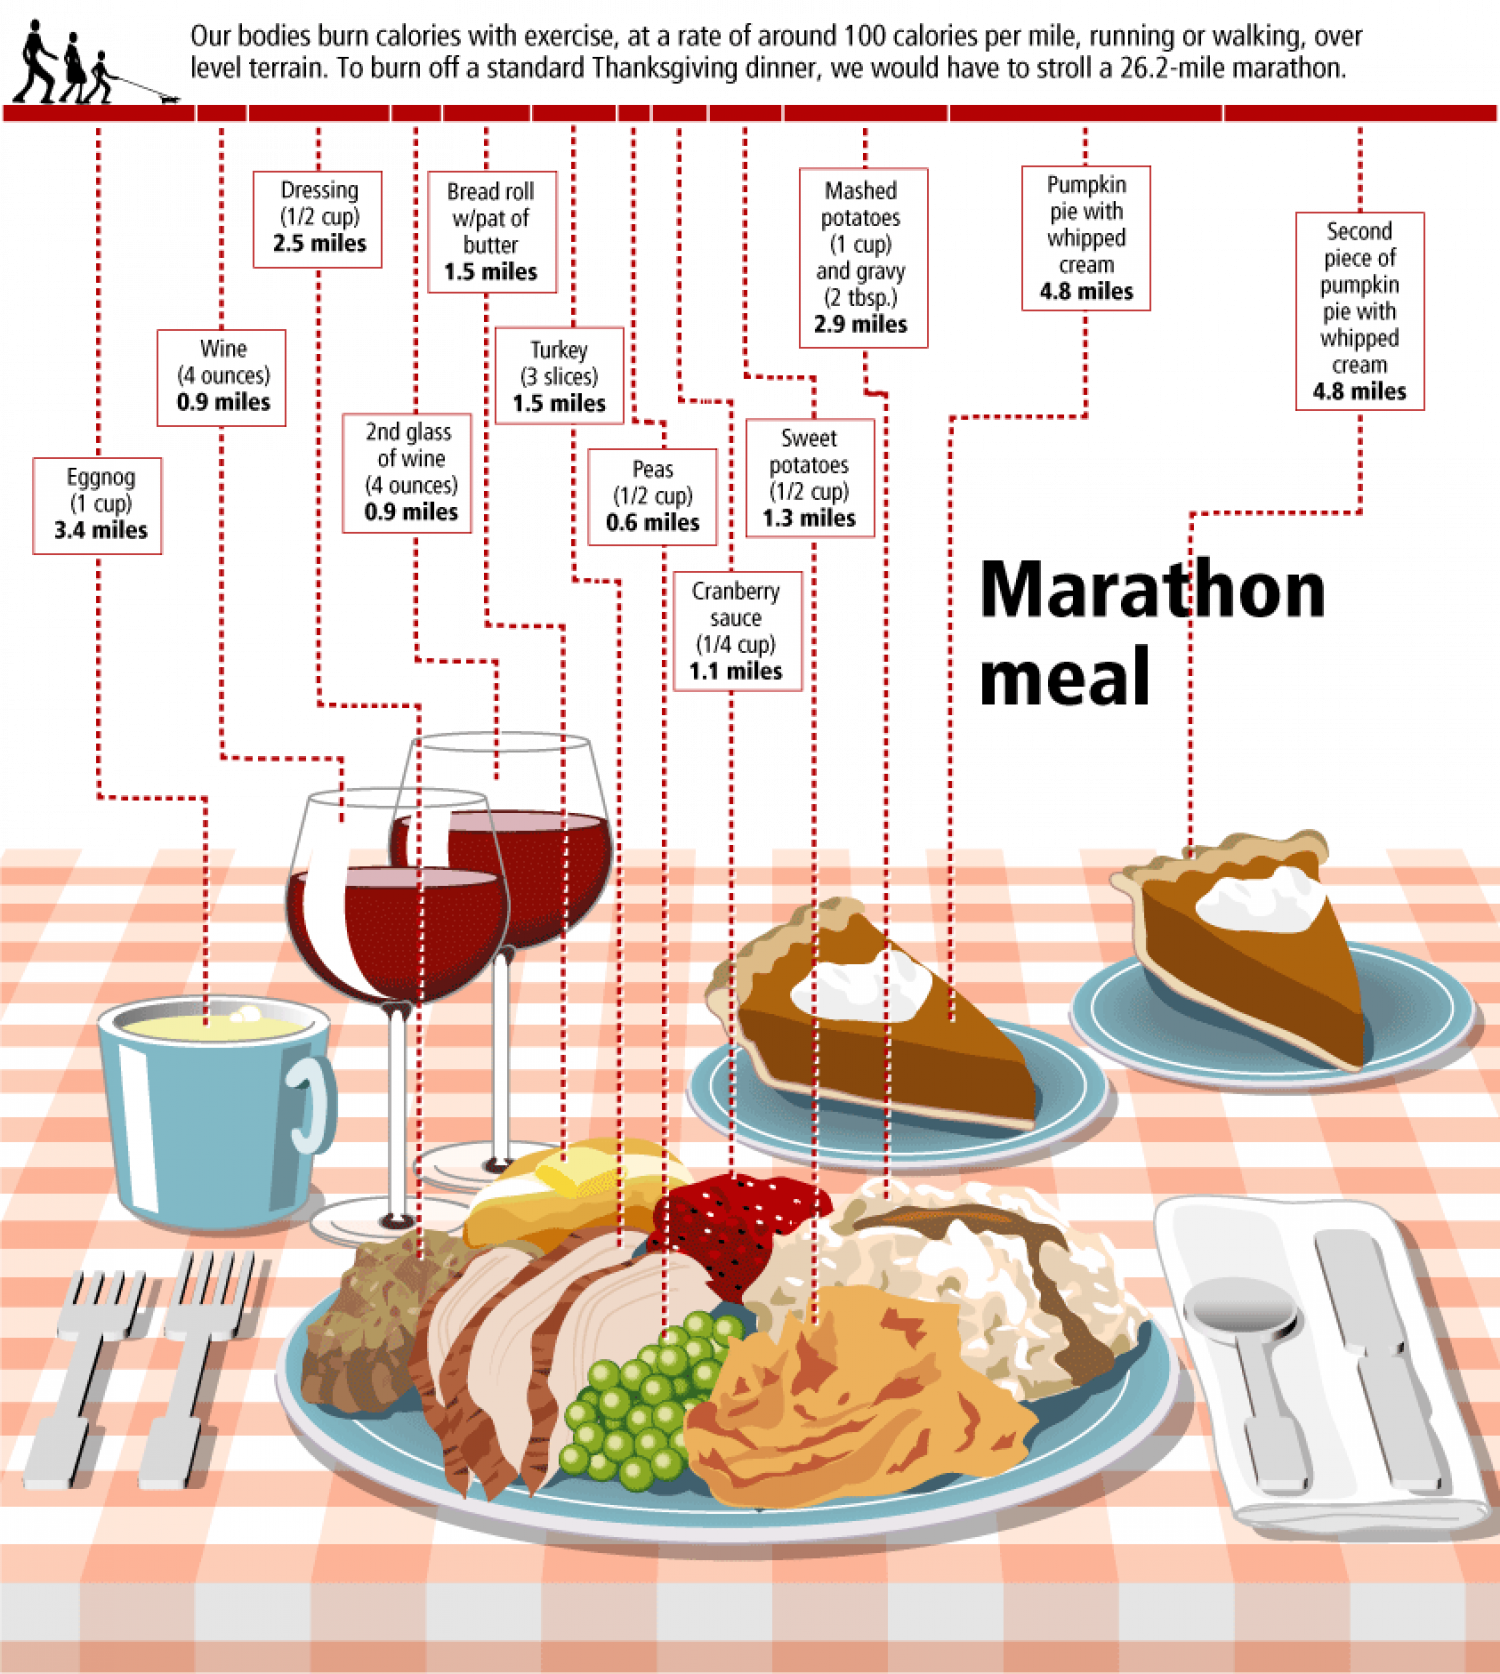 Marathon Meal Infographic